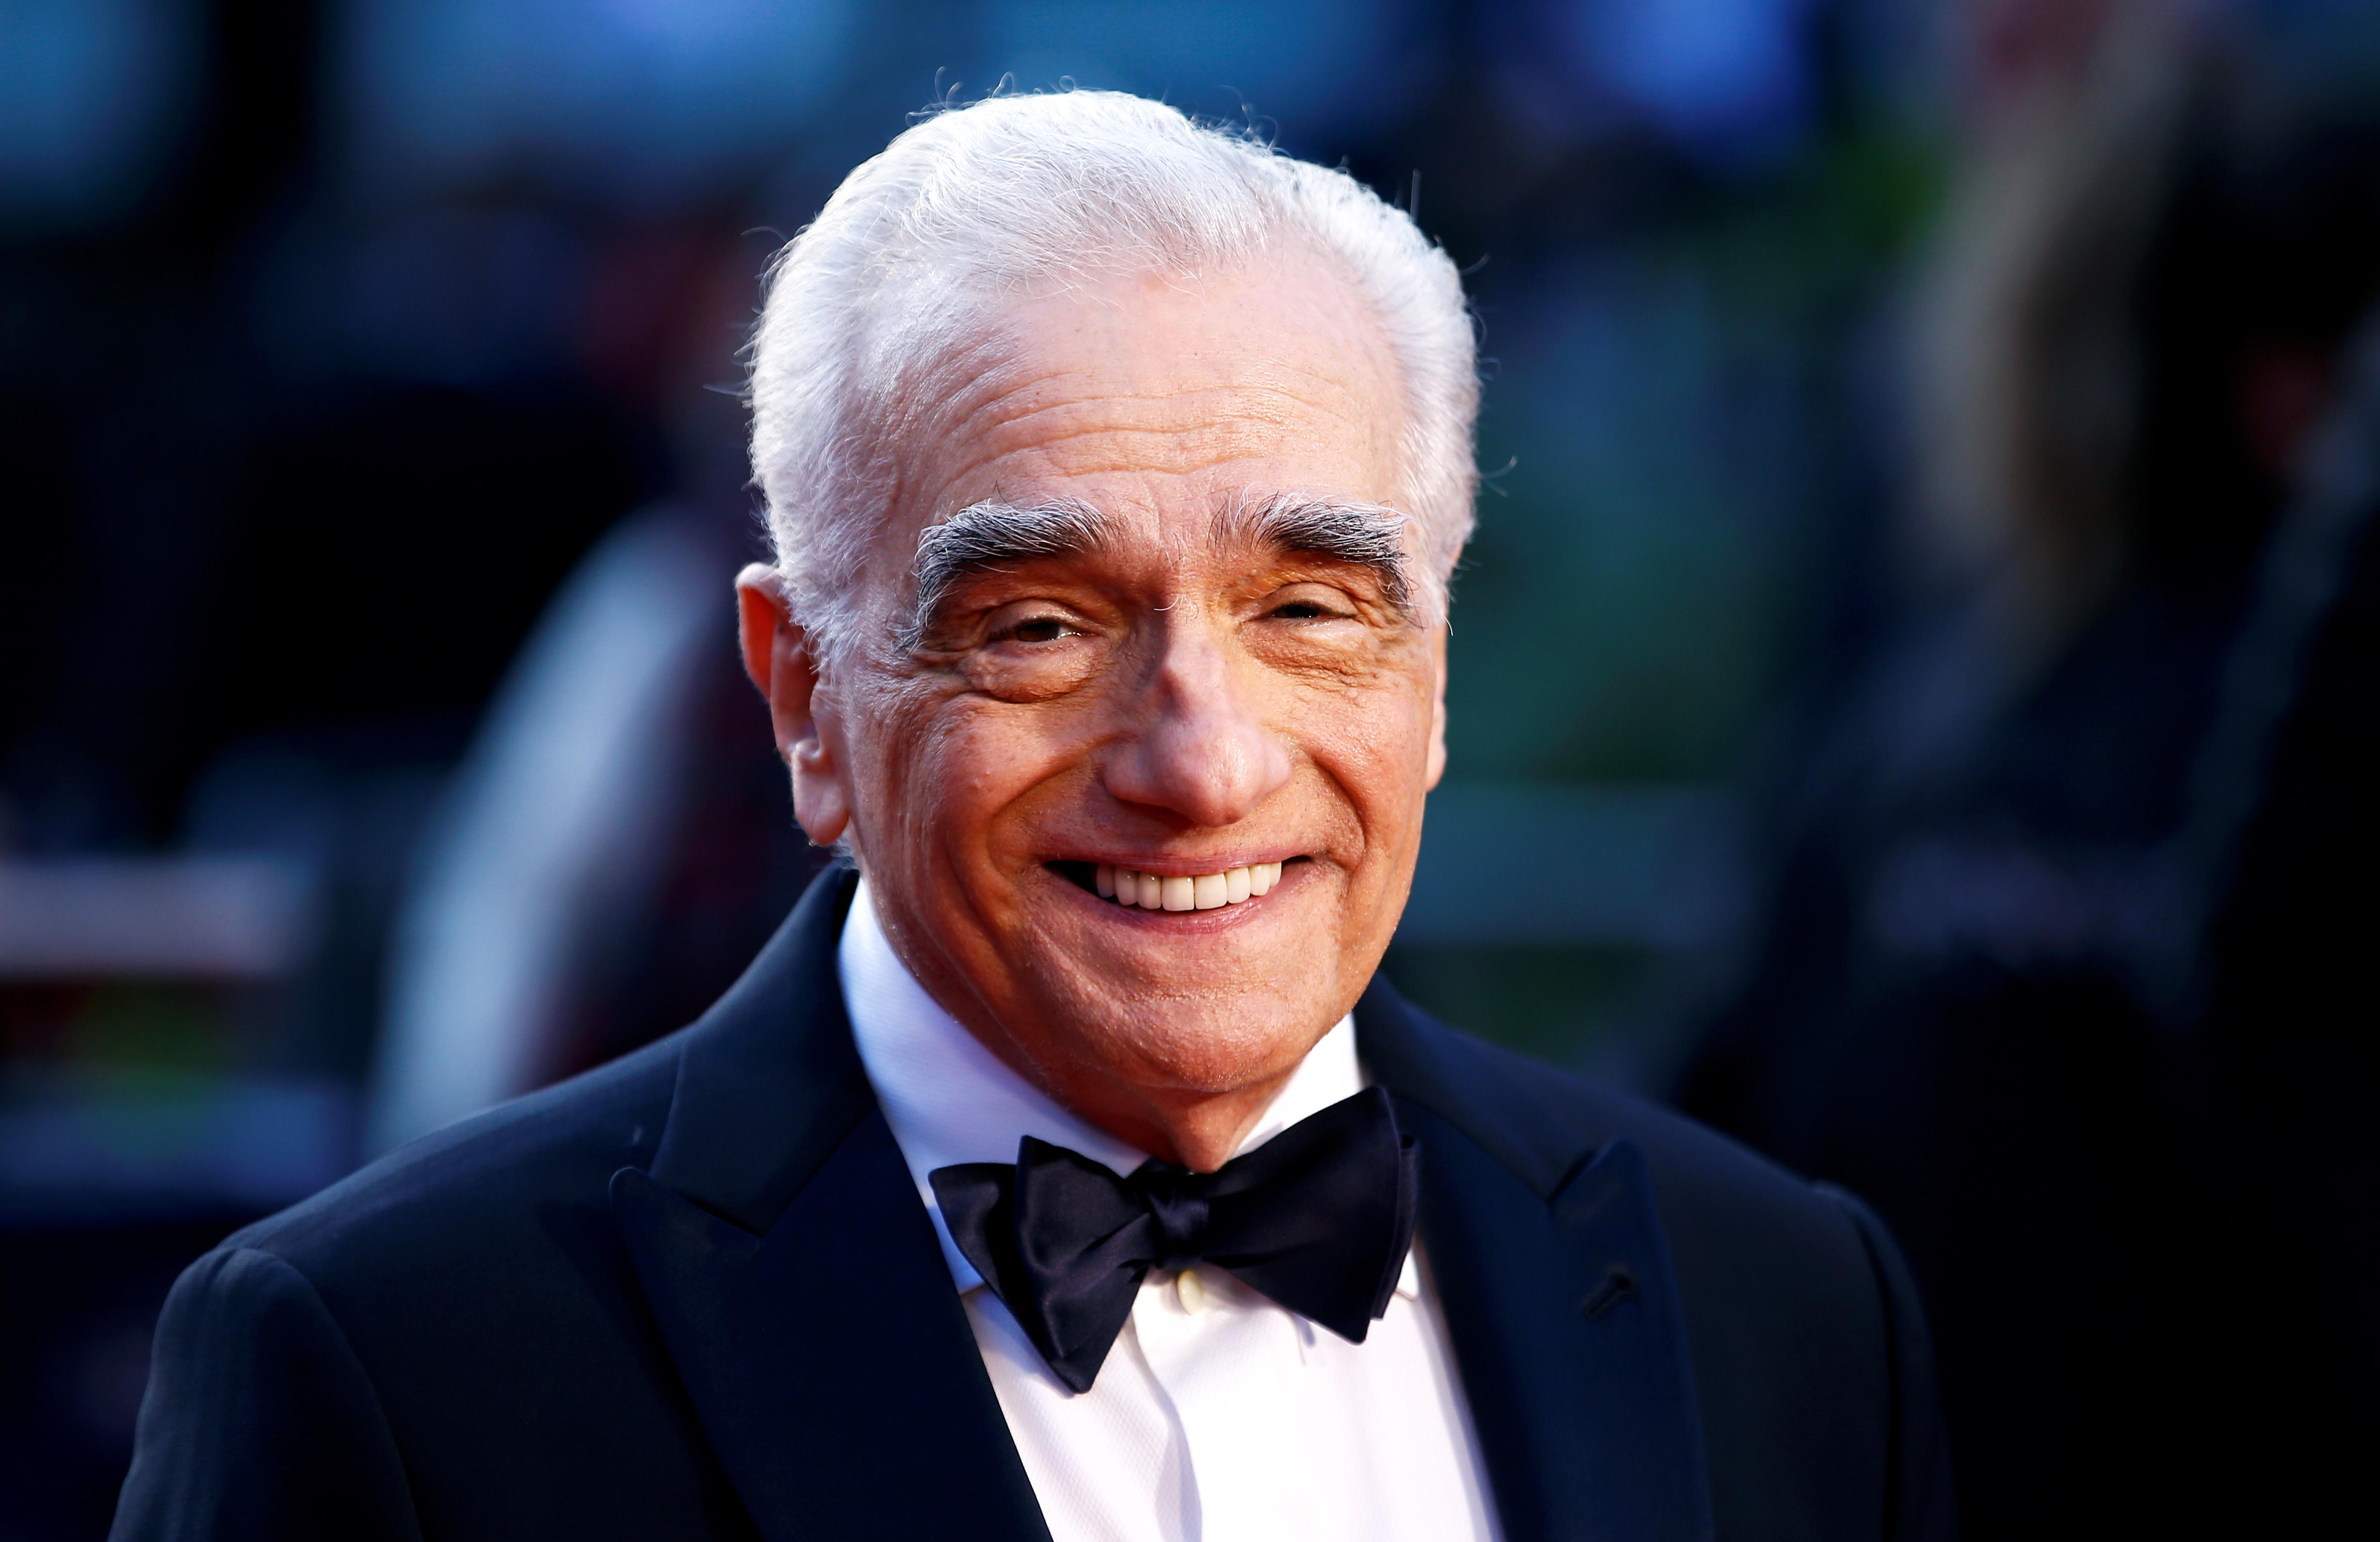 Martin Scorsese doubles down on Marvel criticism: 'We shouldn't be invaded' by 'theme park films'